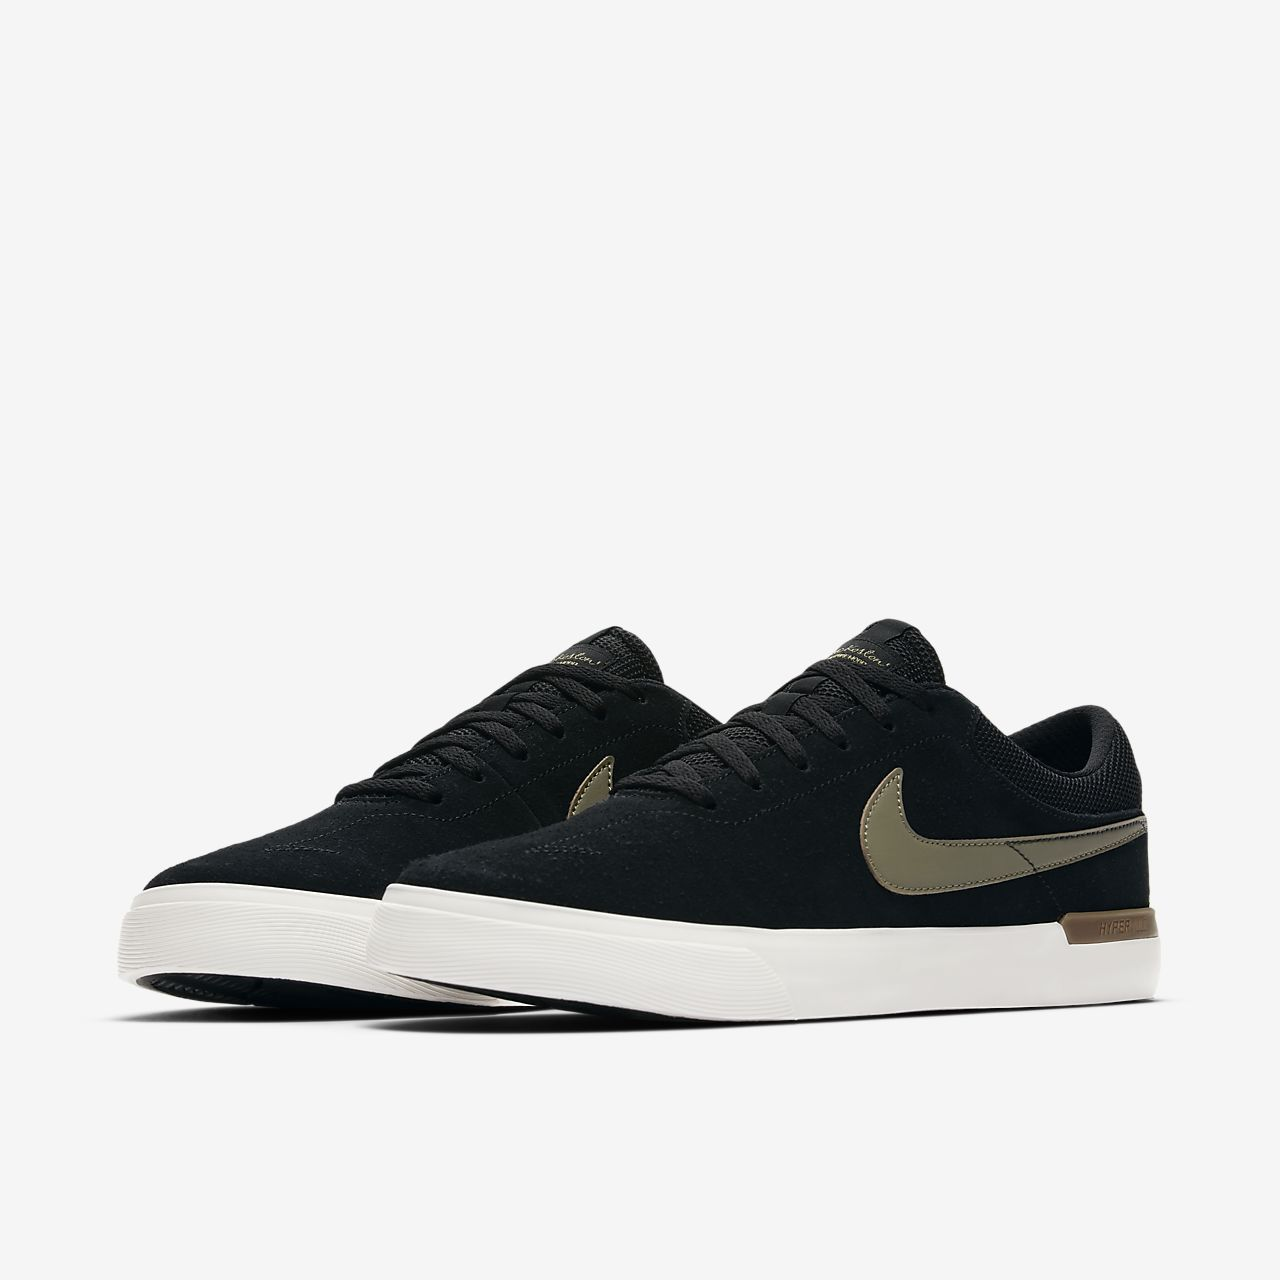 premium selection 3a6a9 cd38b Nike SB Air Max Bruin Vapor   Sneaker Heaven   Mens skate shoes, Nike SB  und Skate shoes